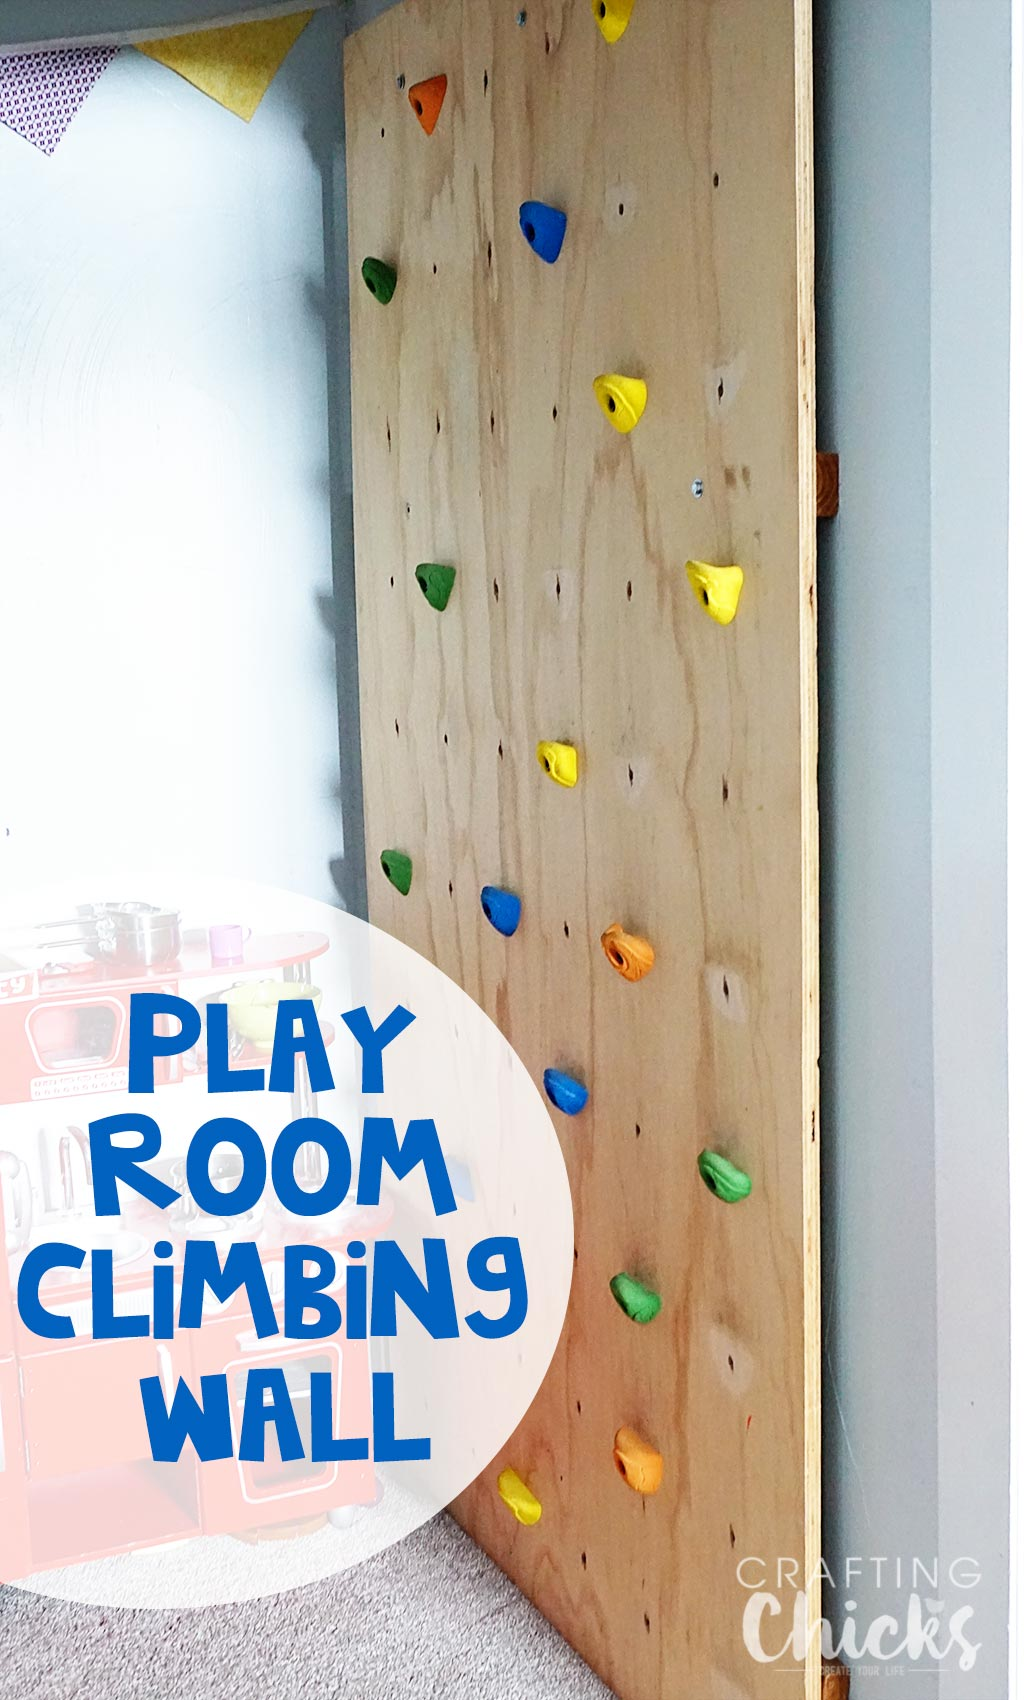 Play Room Climbing Wall